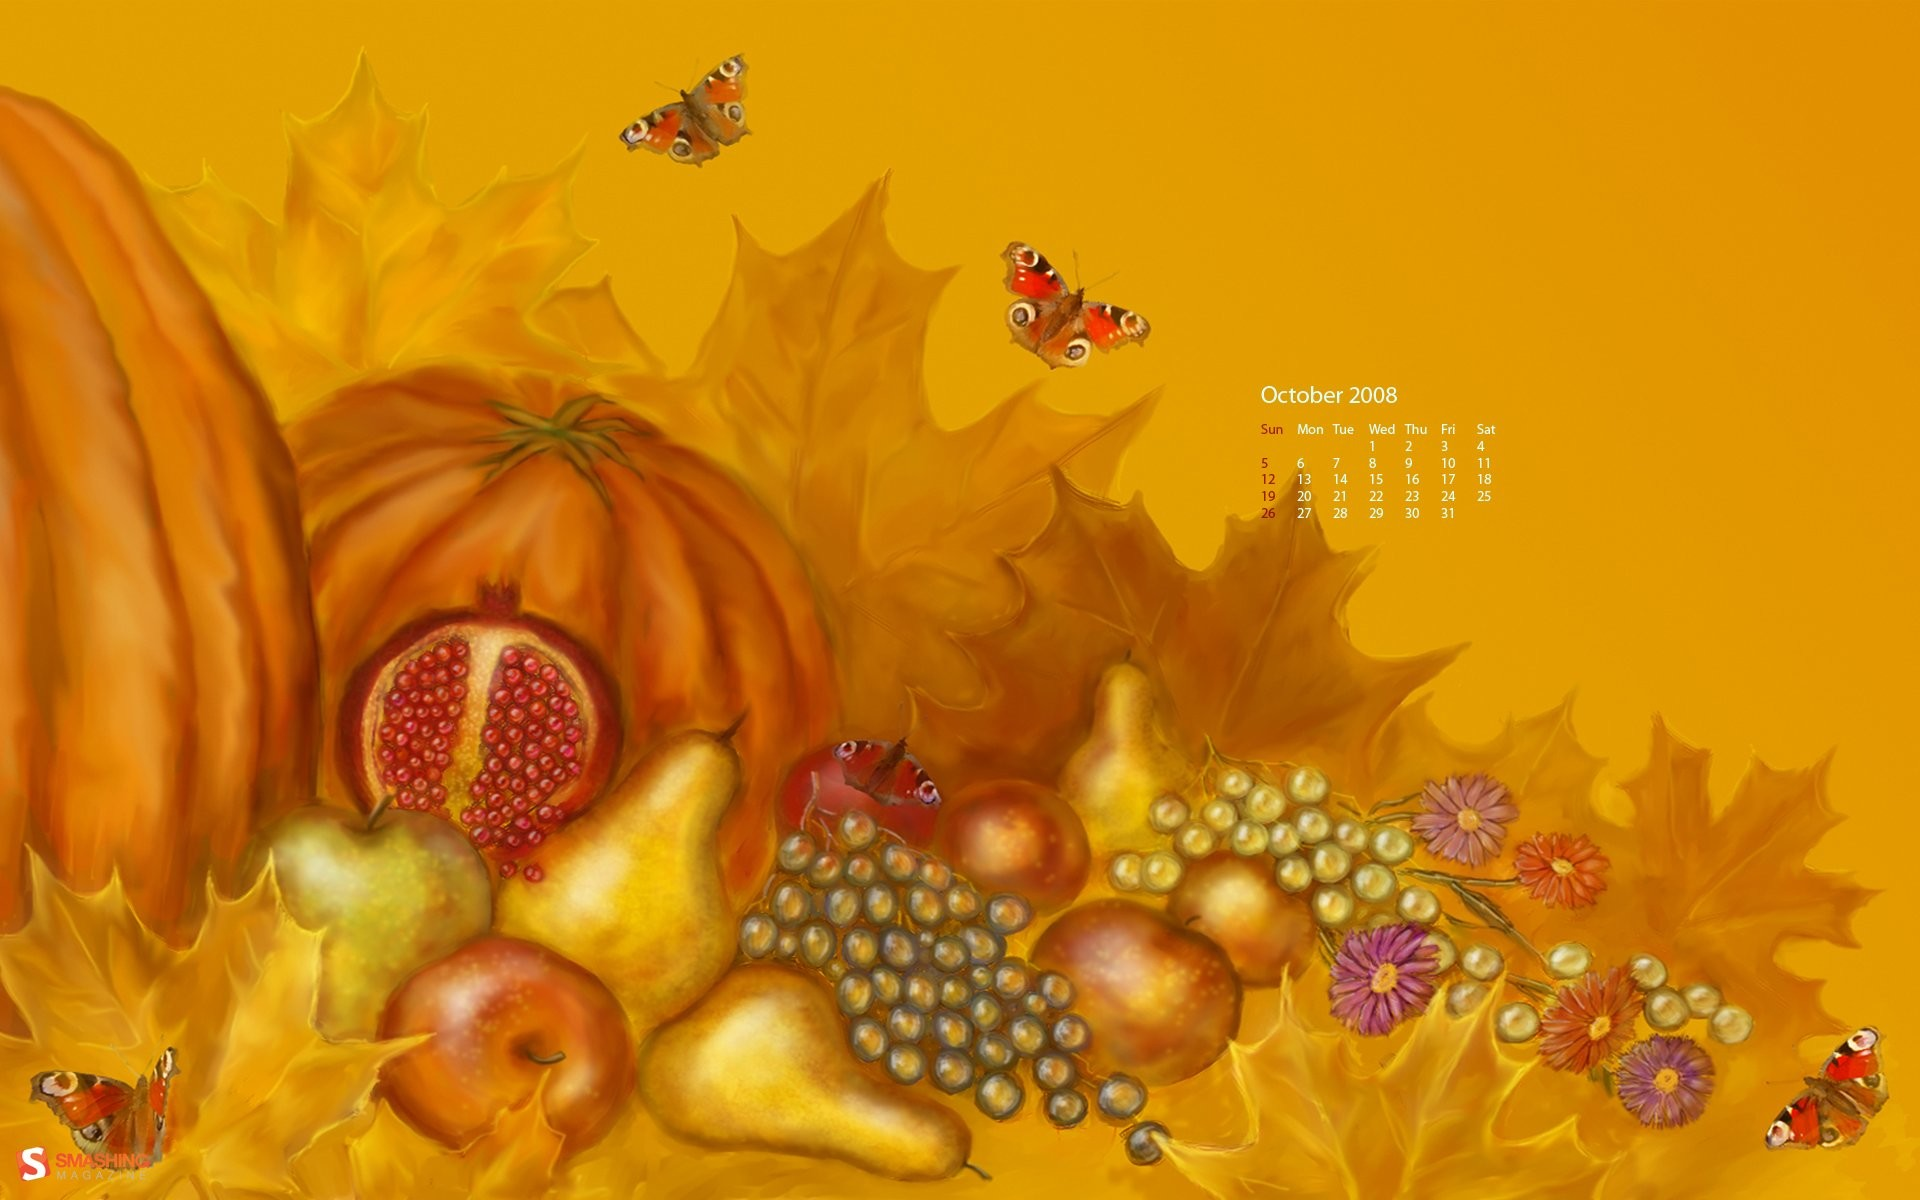 Elegant 1920x1107 ... Wallpaper Hd 2016 Hello October Quote With Falling Autumn  Leaves Pictures, Photos .